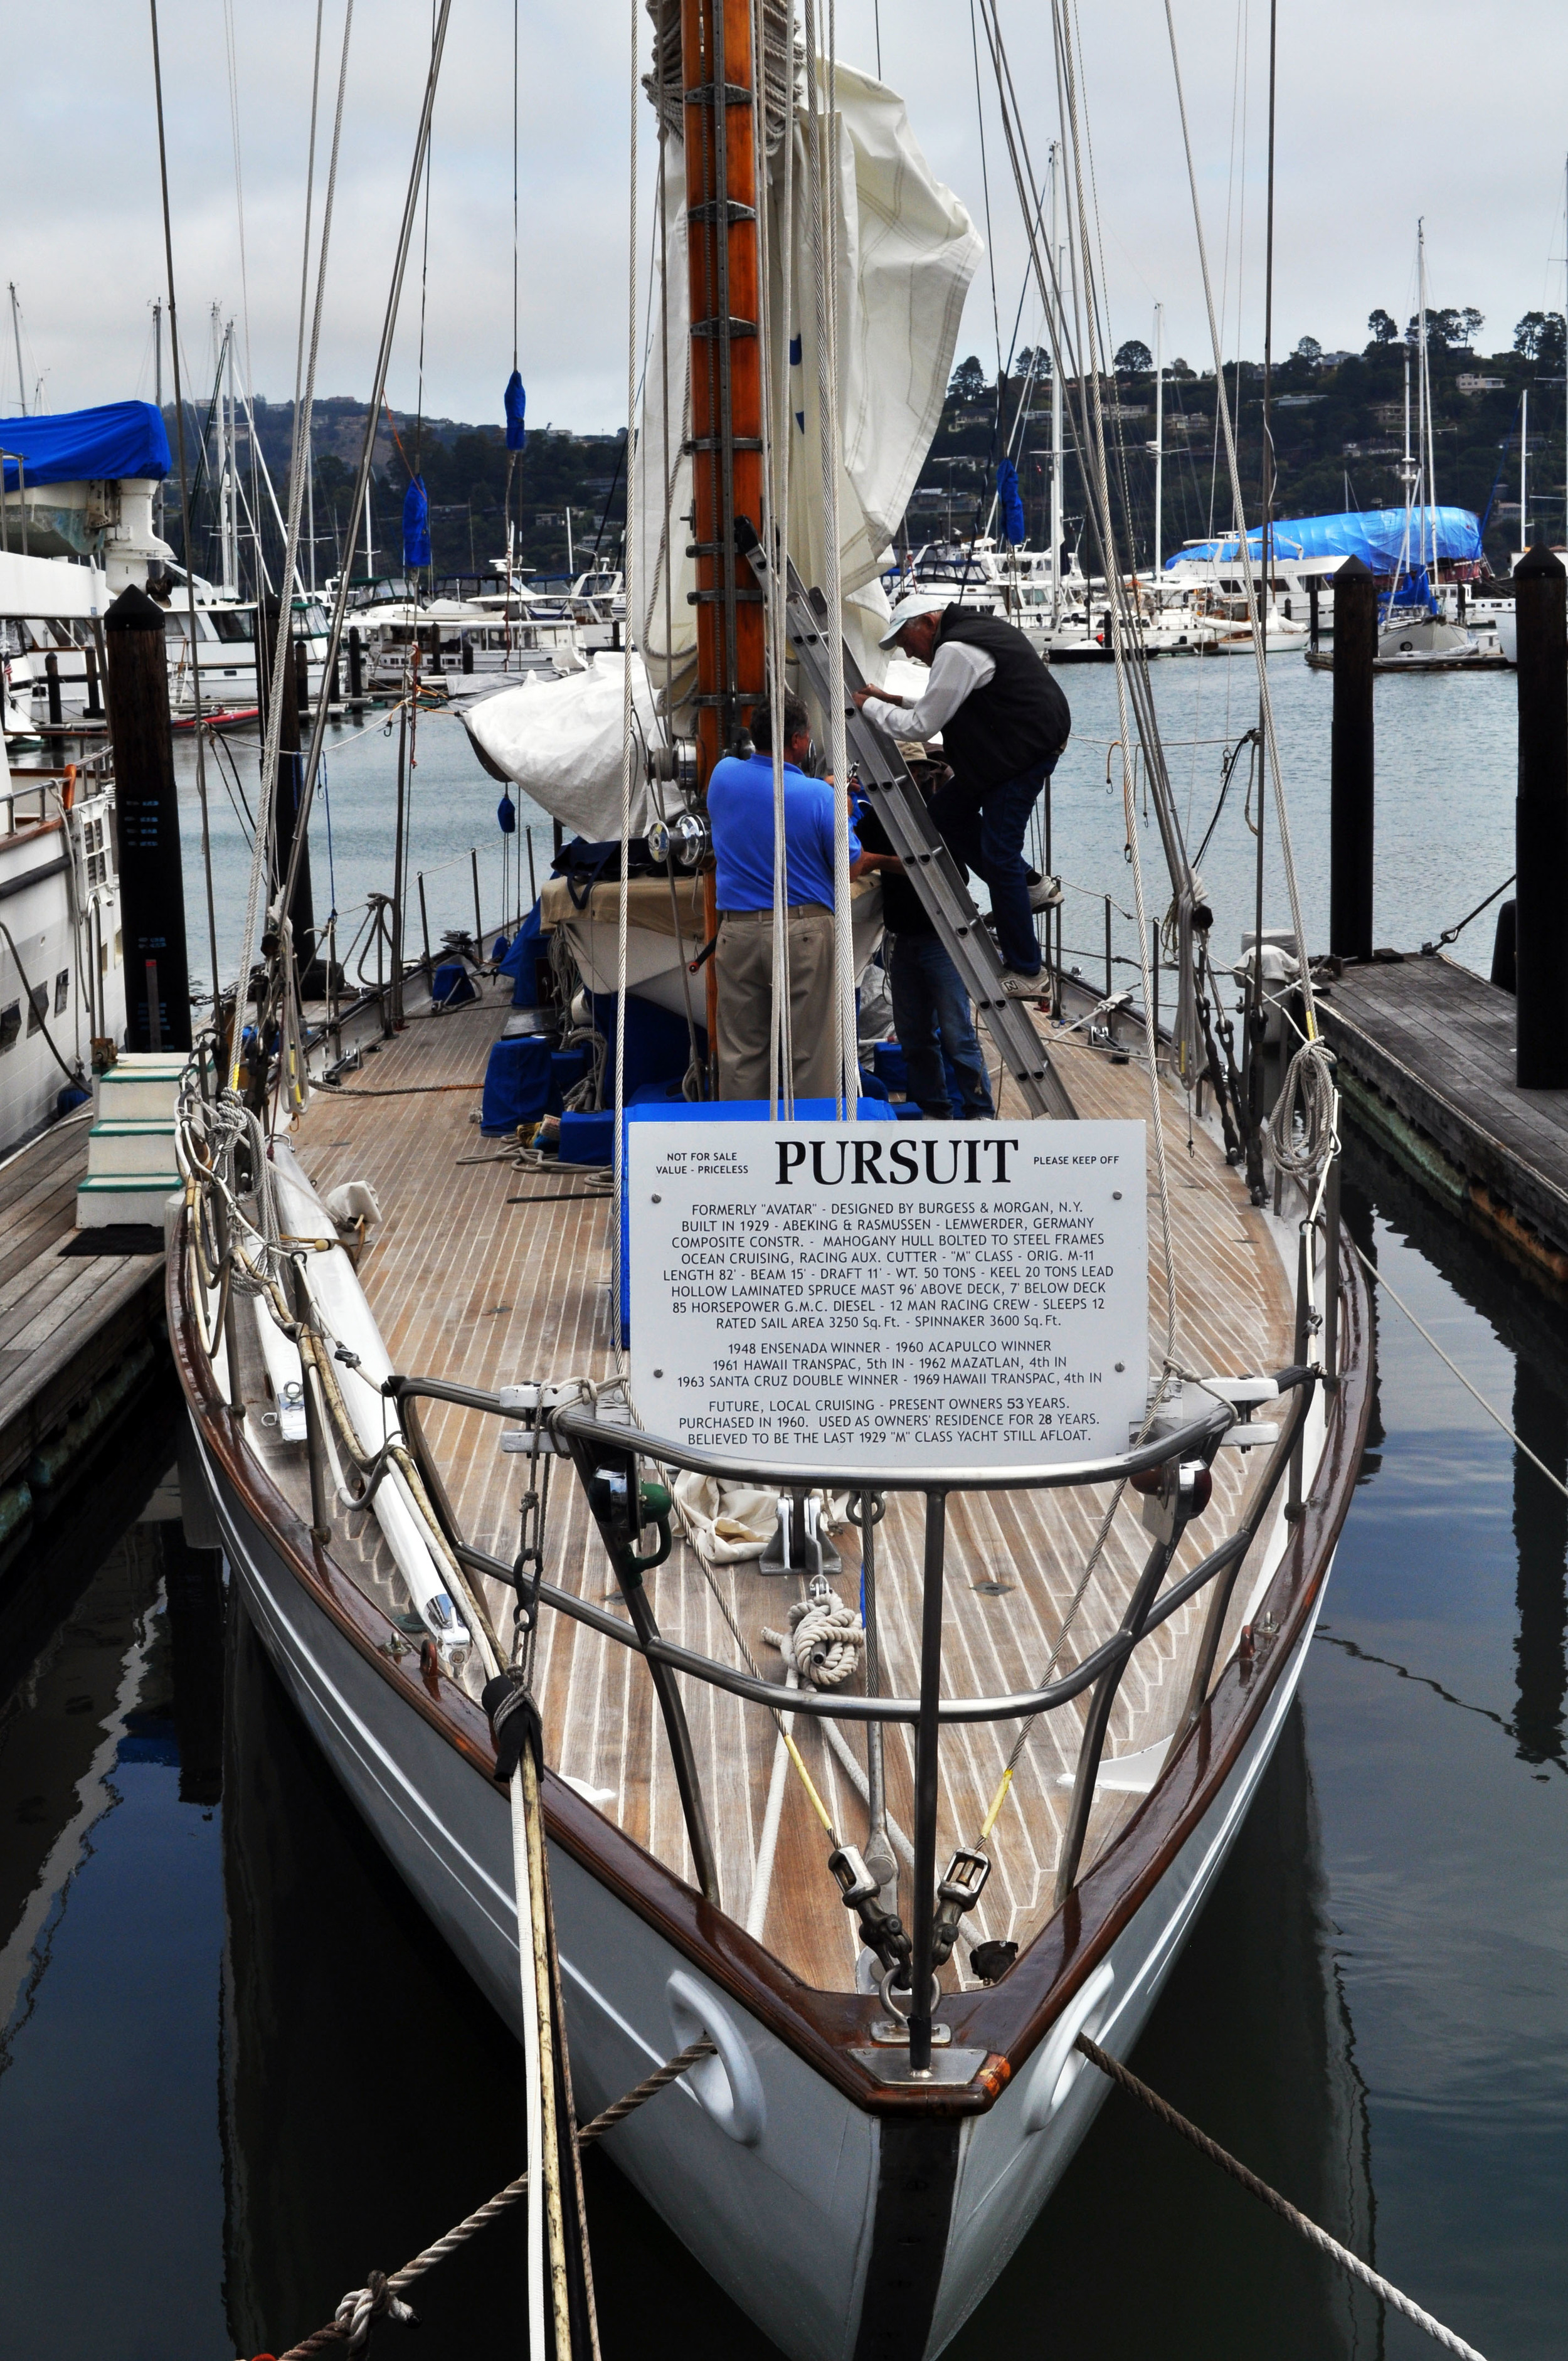 Across the Golden Gate docks this nifty ride. Pursuit, if you zoomed in the tablet would inform you that this sail boat was built in 1929 and has had an amazing journey. More info here about her journey http://www.boatingsf.com/boat/pursuit